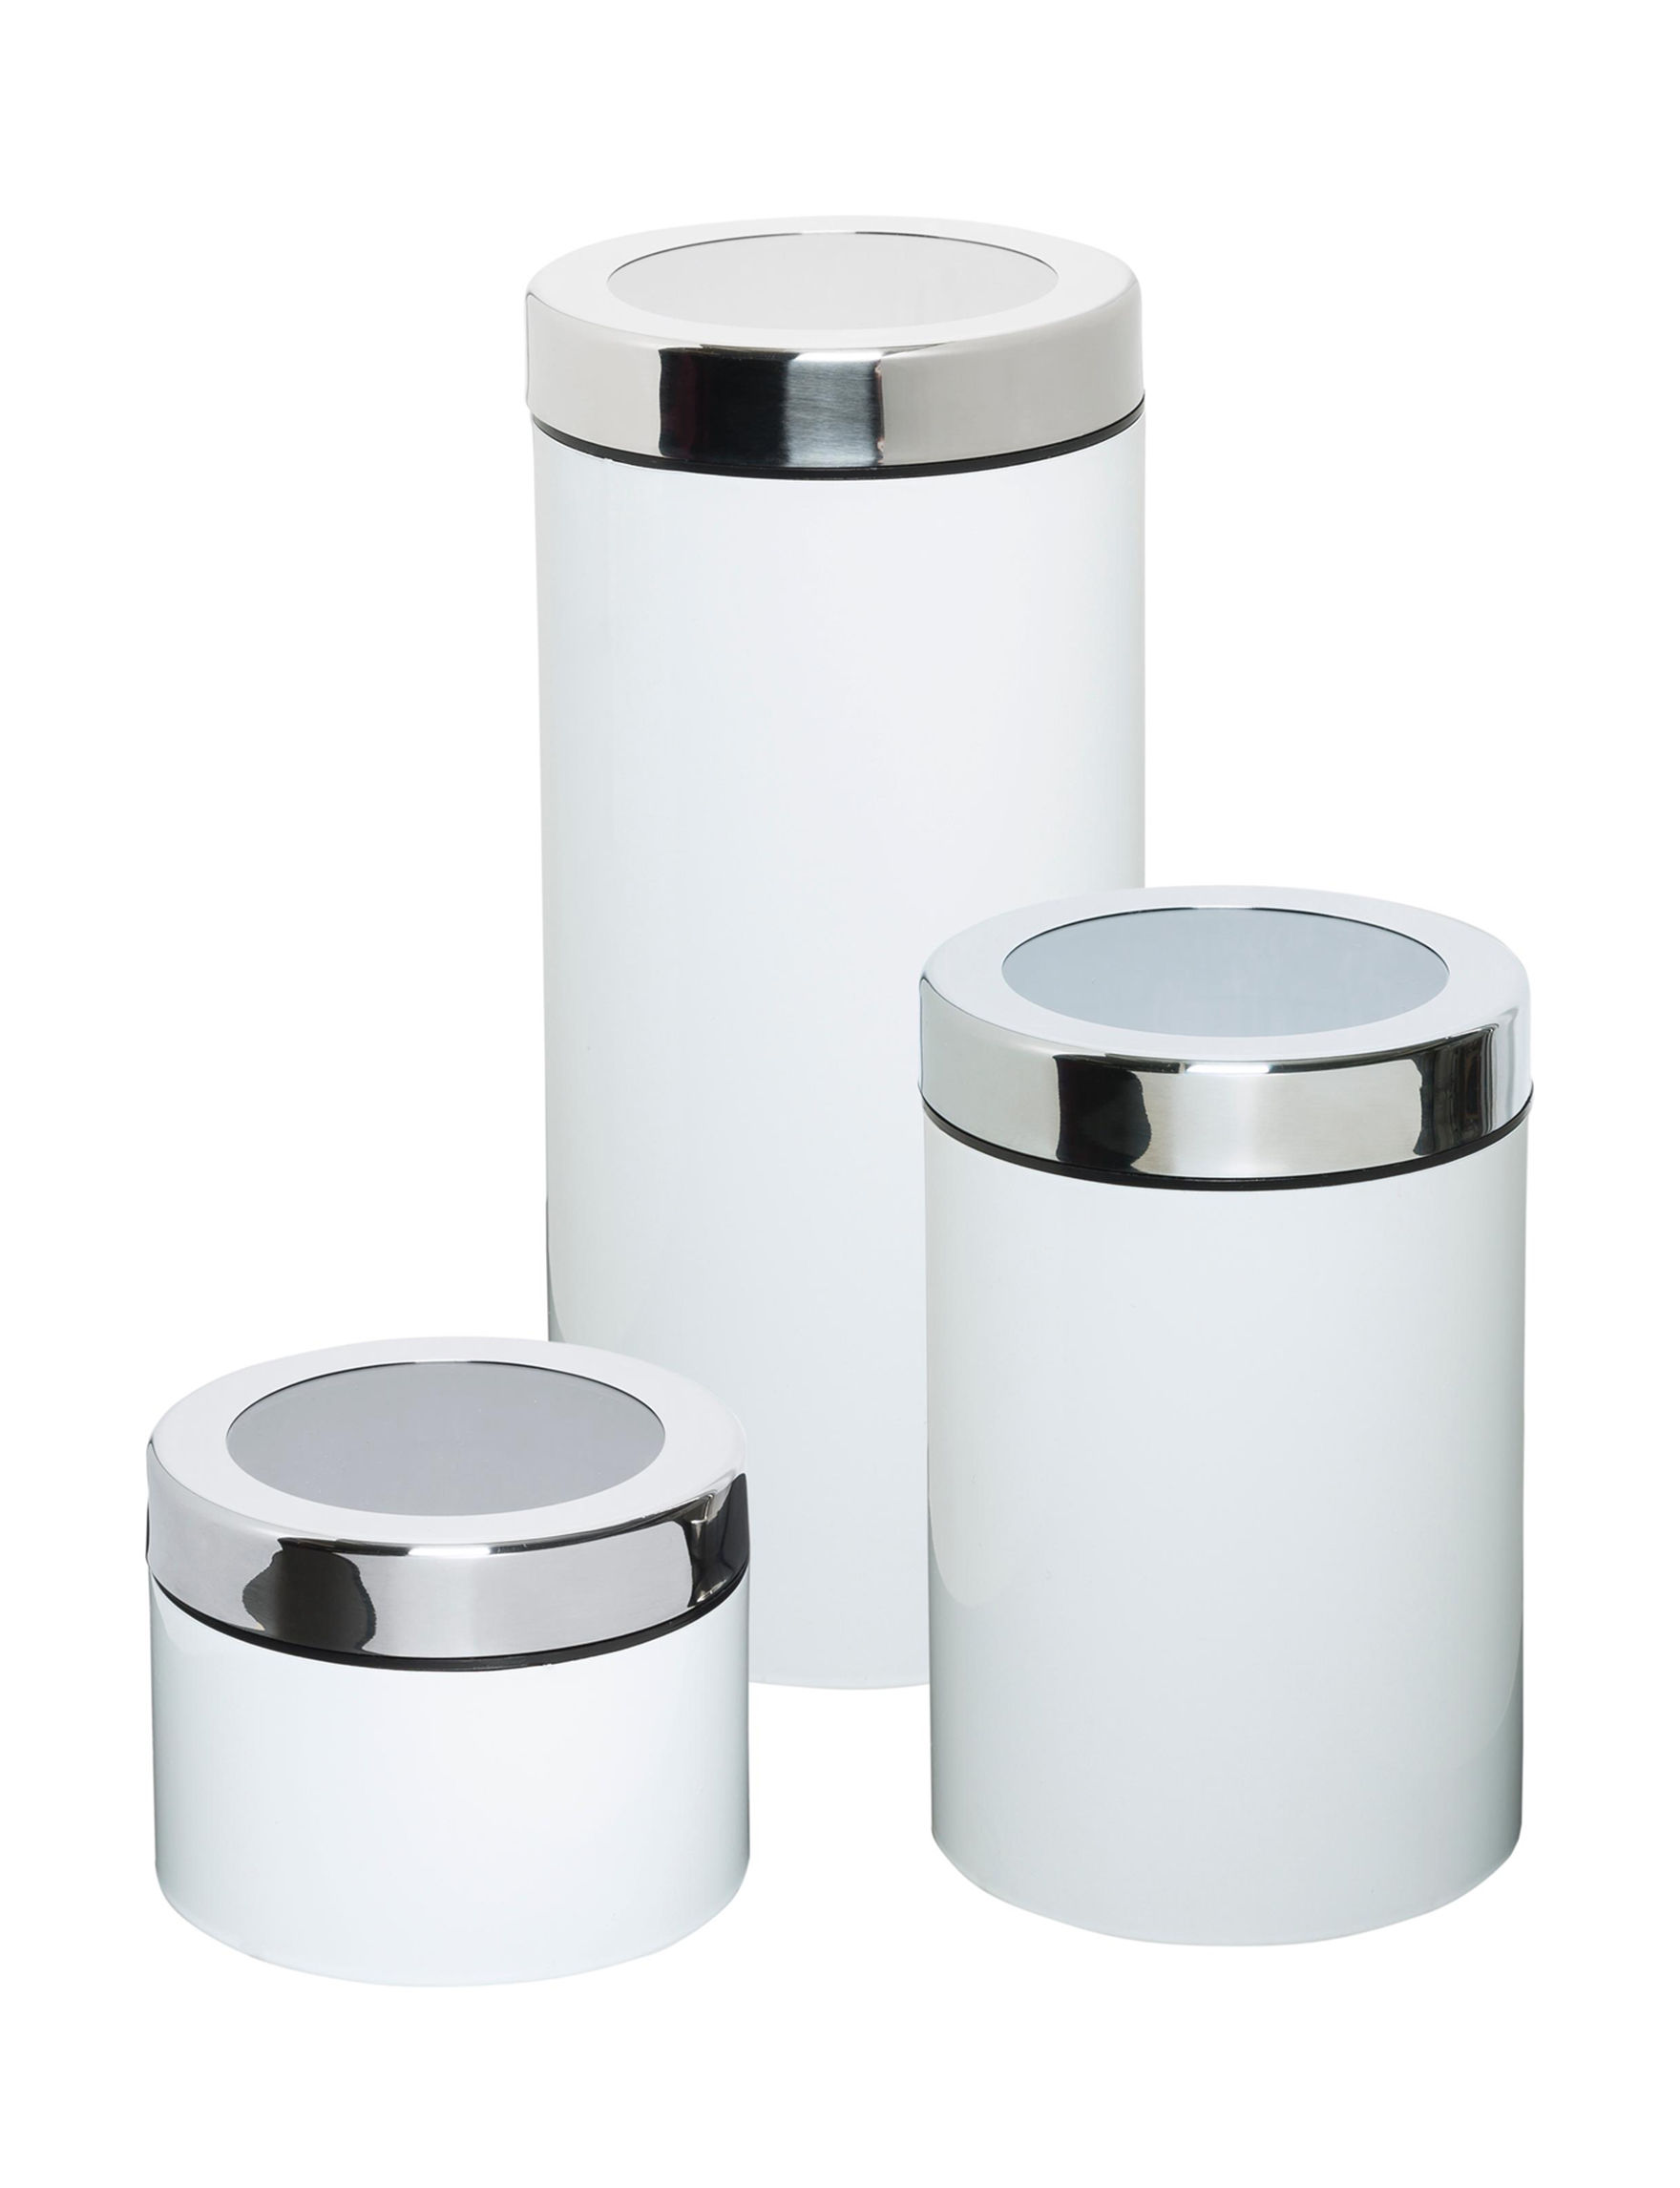 Honey-Can-Do International White Canister Sets Kitchen Storage & Organization